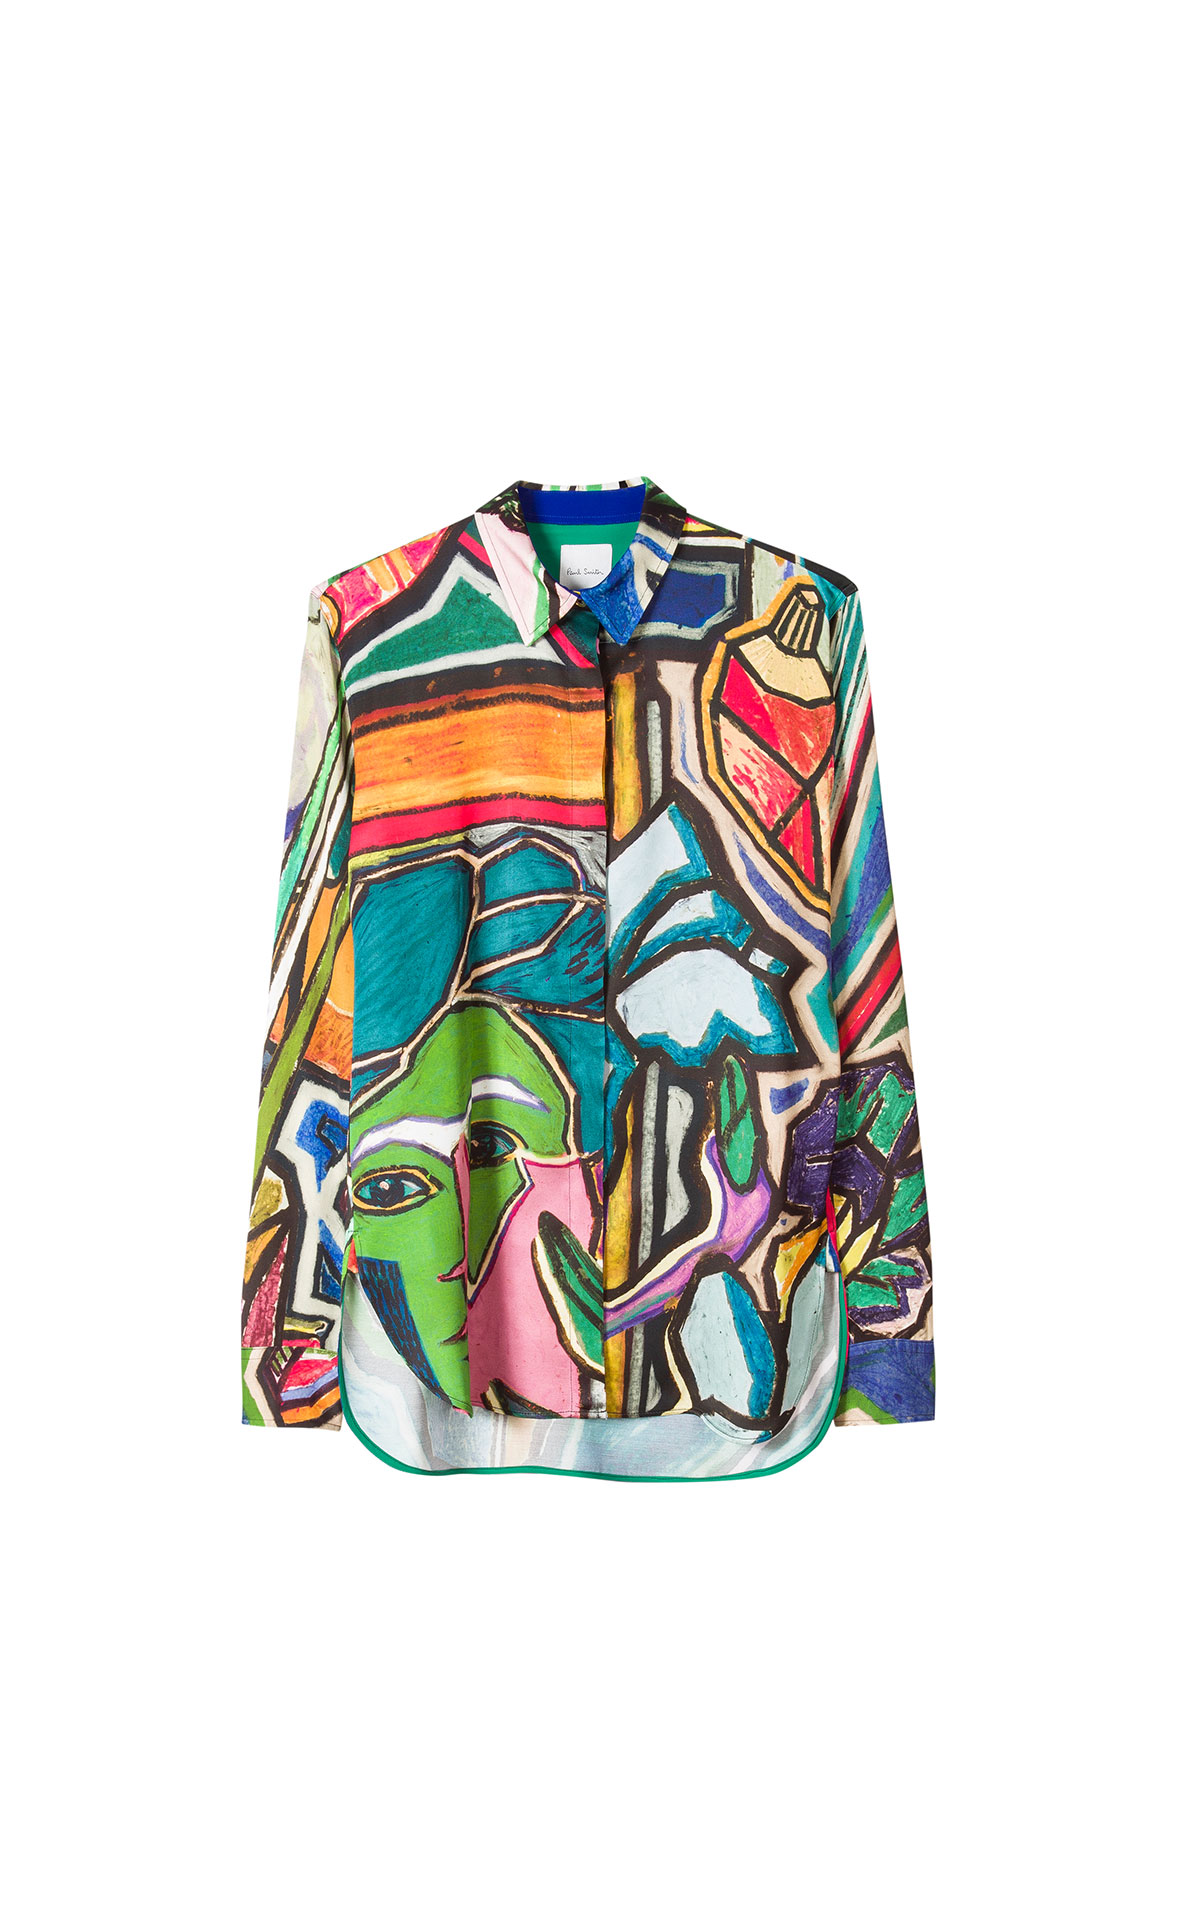 Paul Smith Women's Artist Studio Shirt at The Bicester Village Shopping Collection